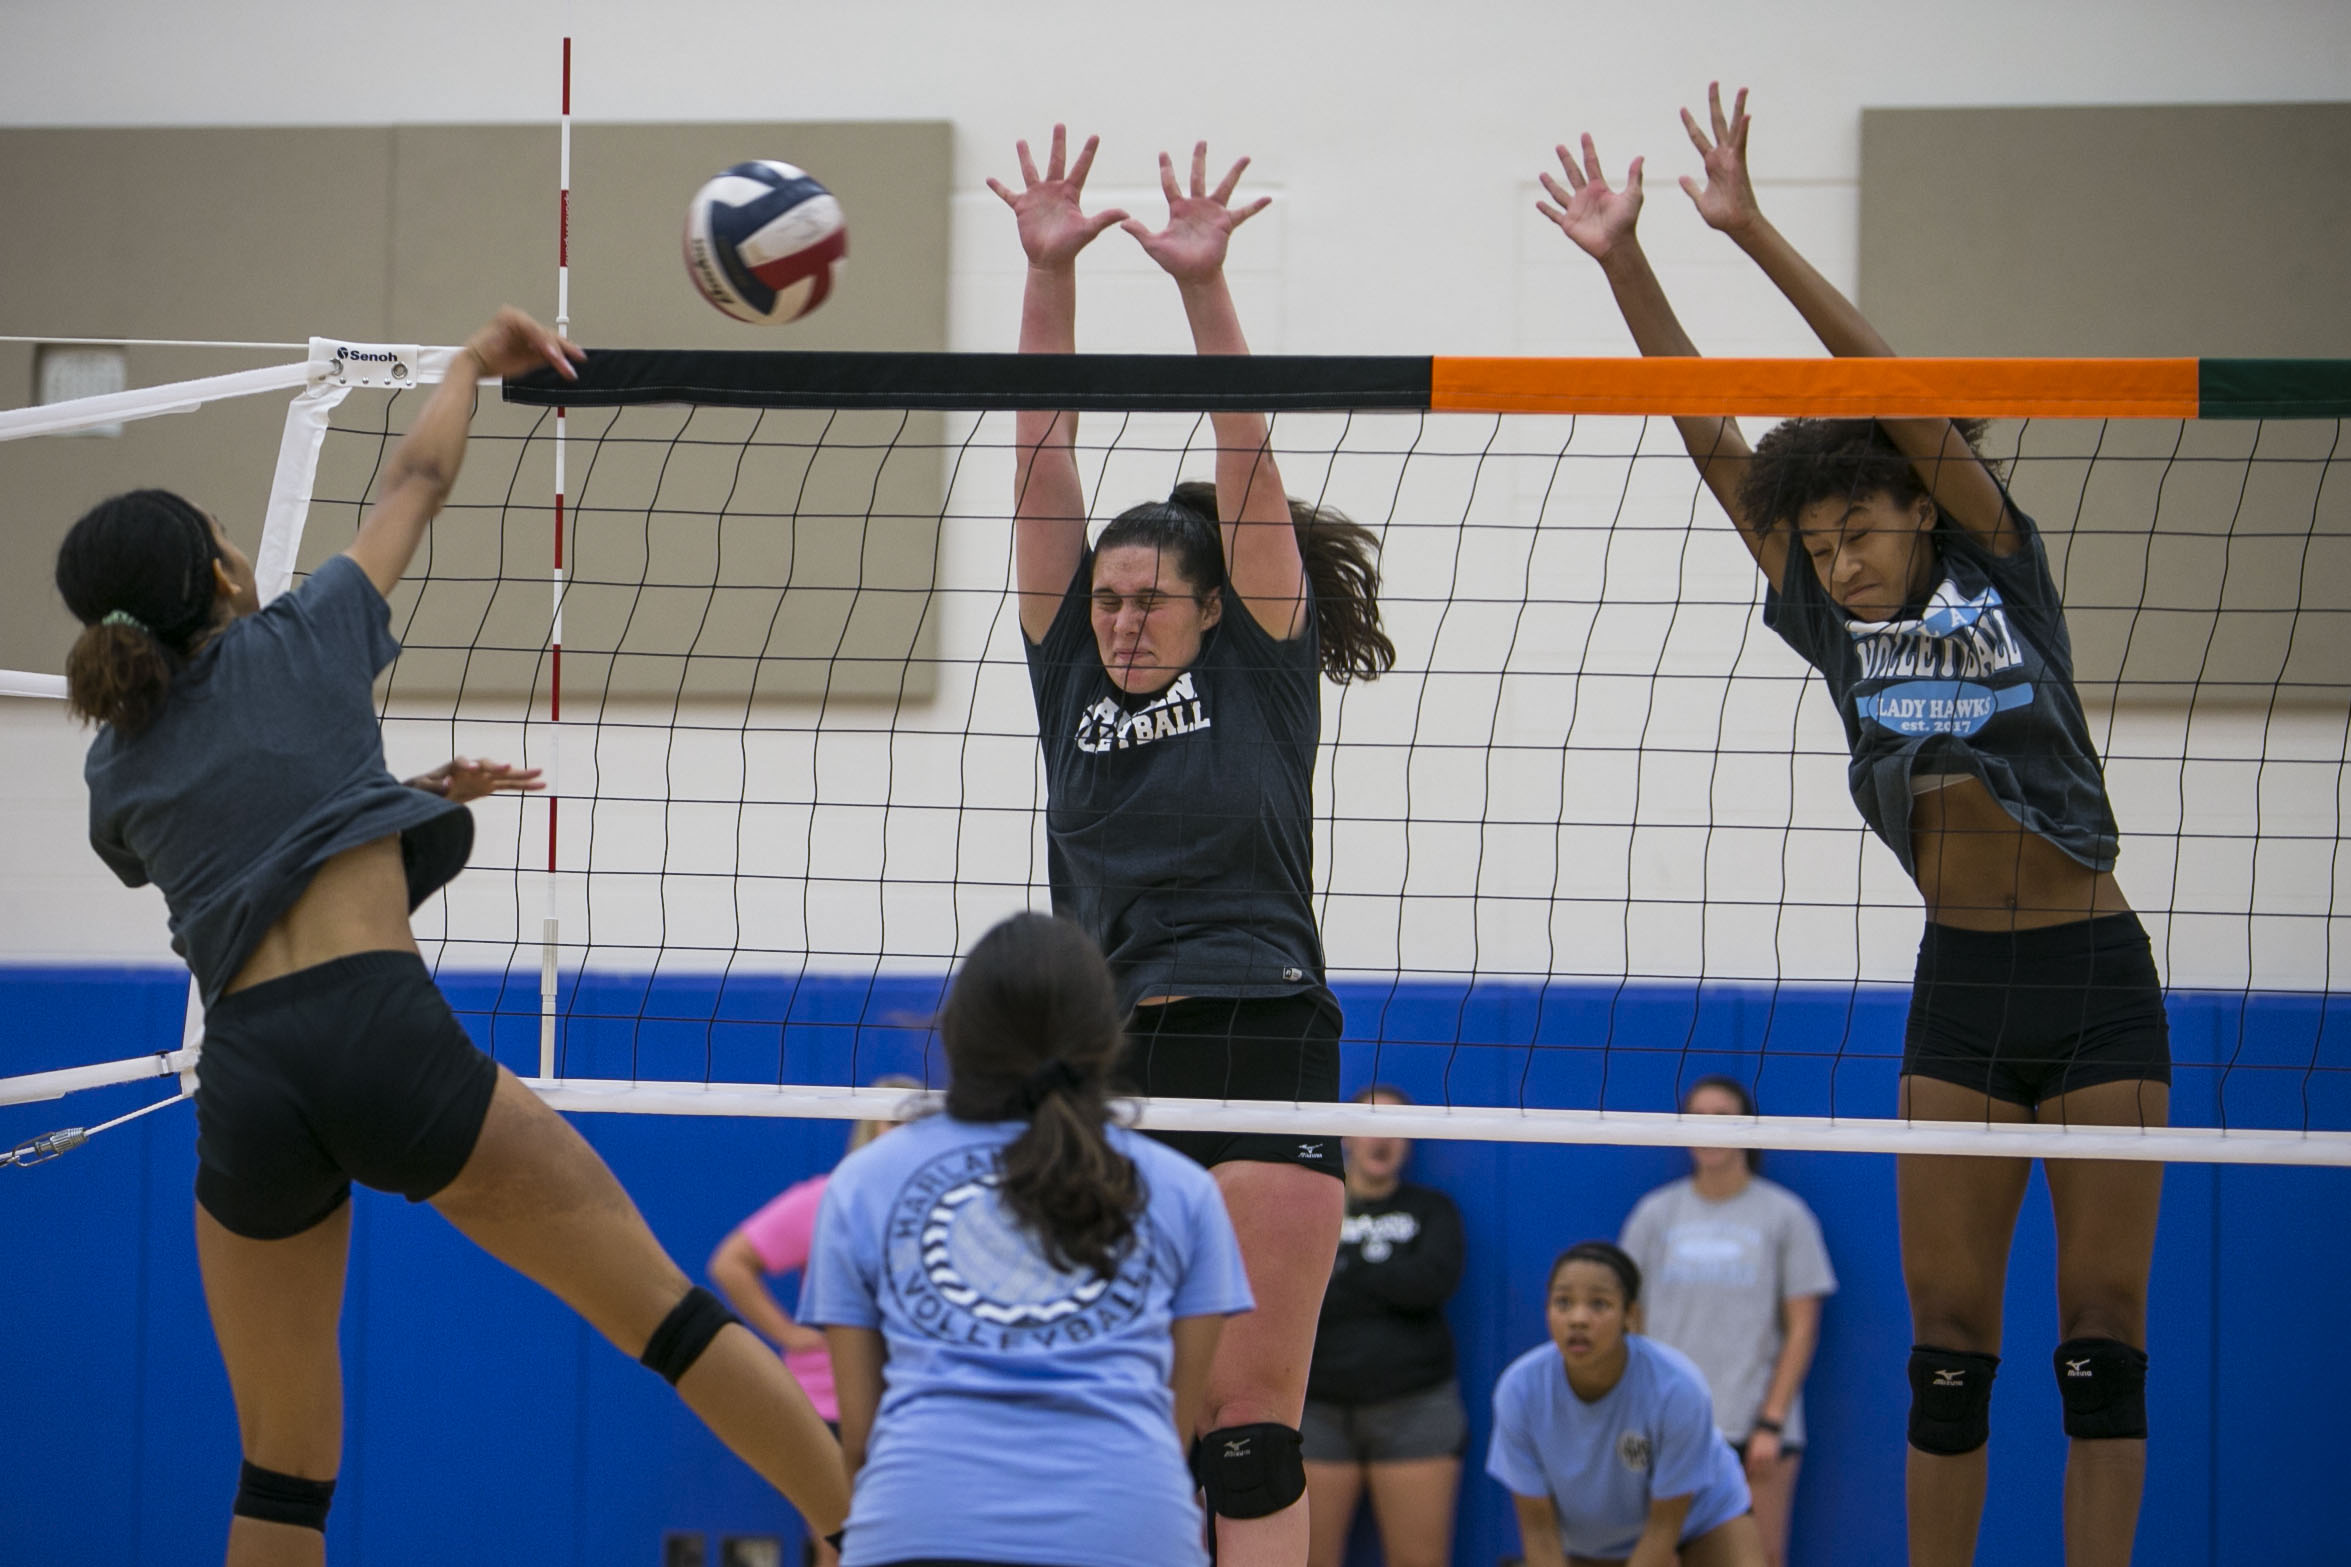 Amaia Martin, 16, and Ayanna Jackson, 16, squeeze their eyes shut as they jump to block Ashley Chatham's, 16, hit during the first day of volleyball tryouts at Harlan High School.